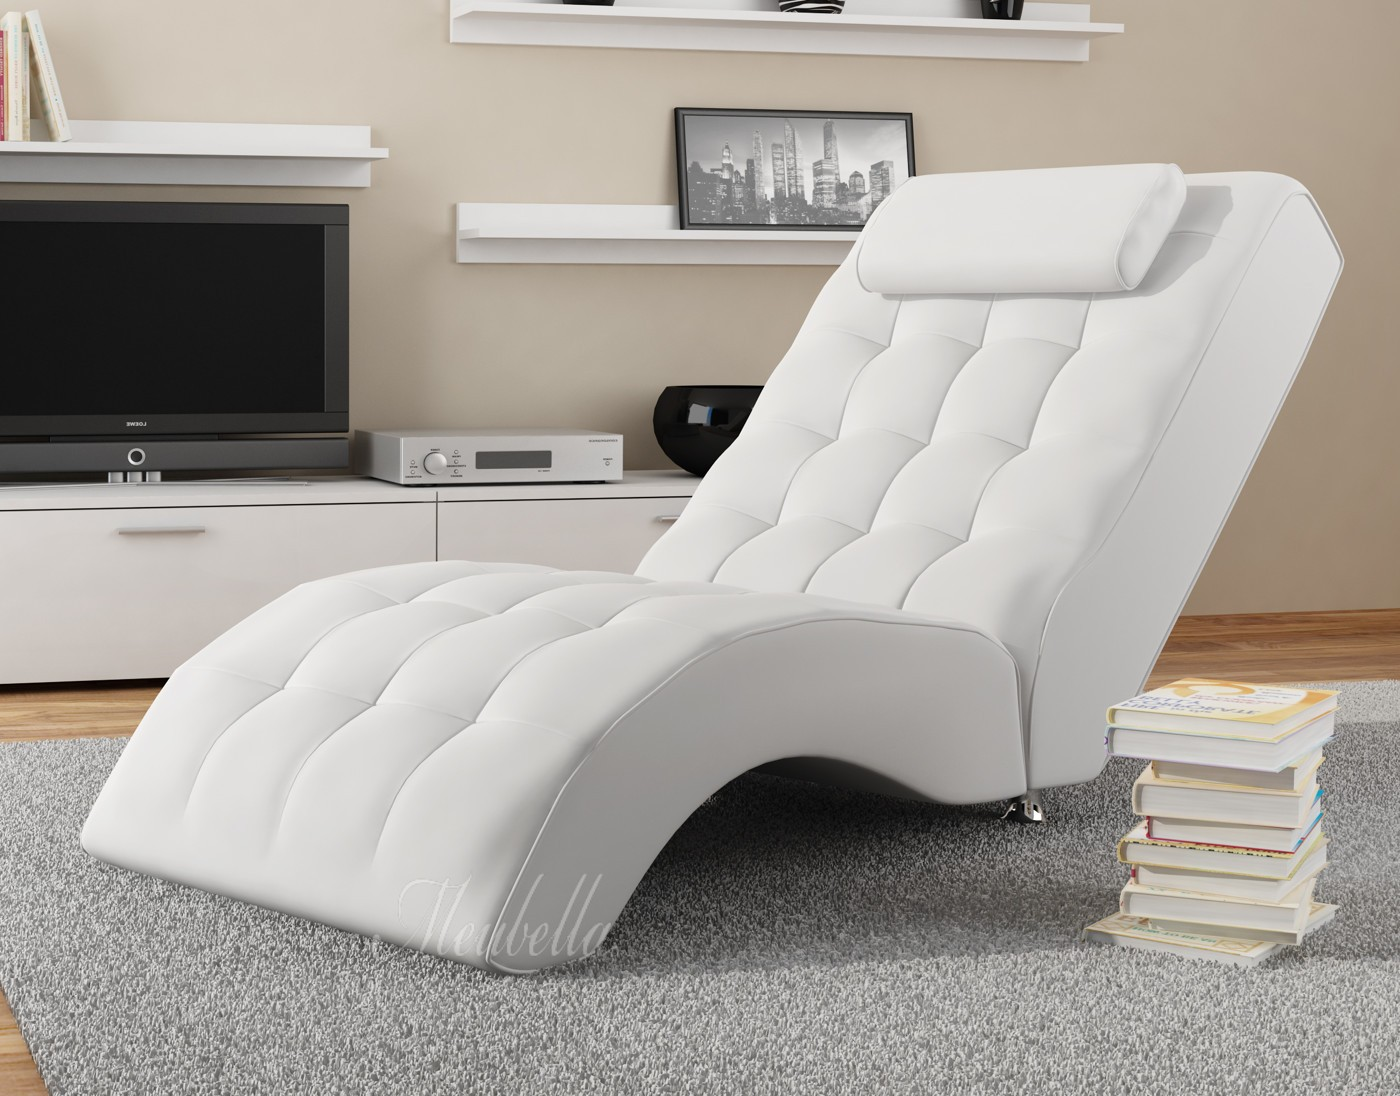 chaise longue cherry wit chaise longues banken woonkamer meubella. Black Bedroom Furniture Sets. Home Design Ideas